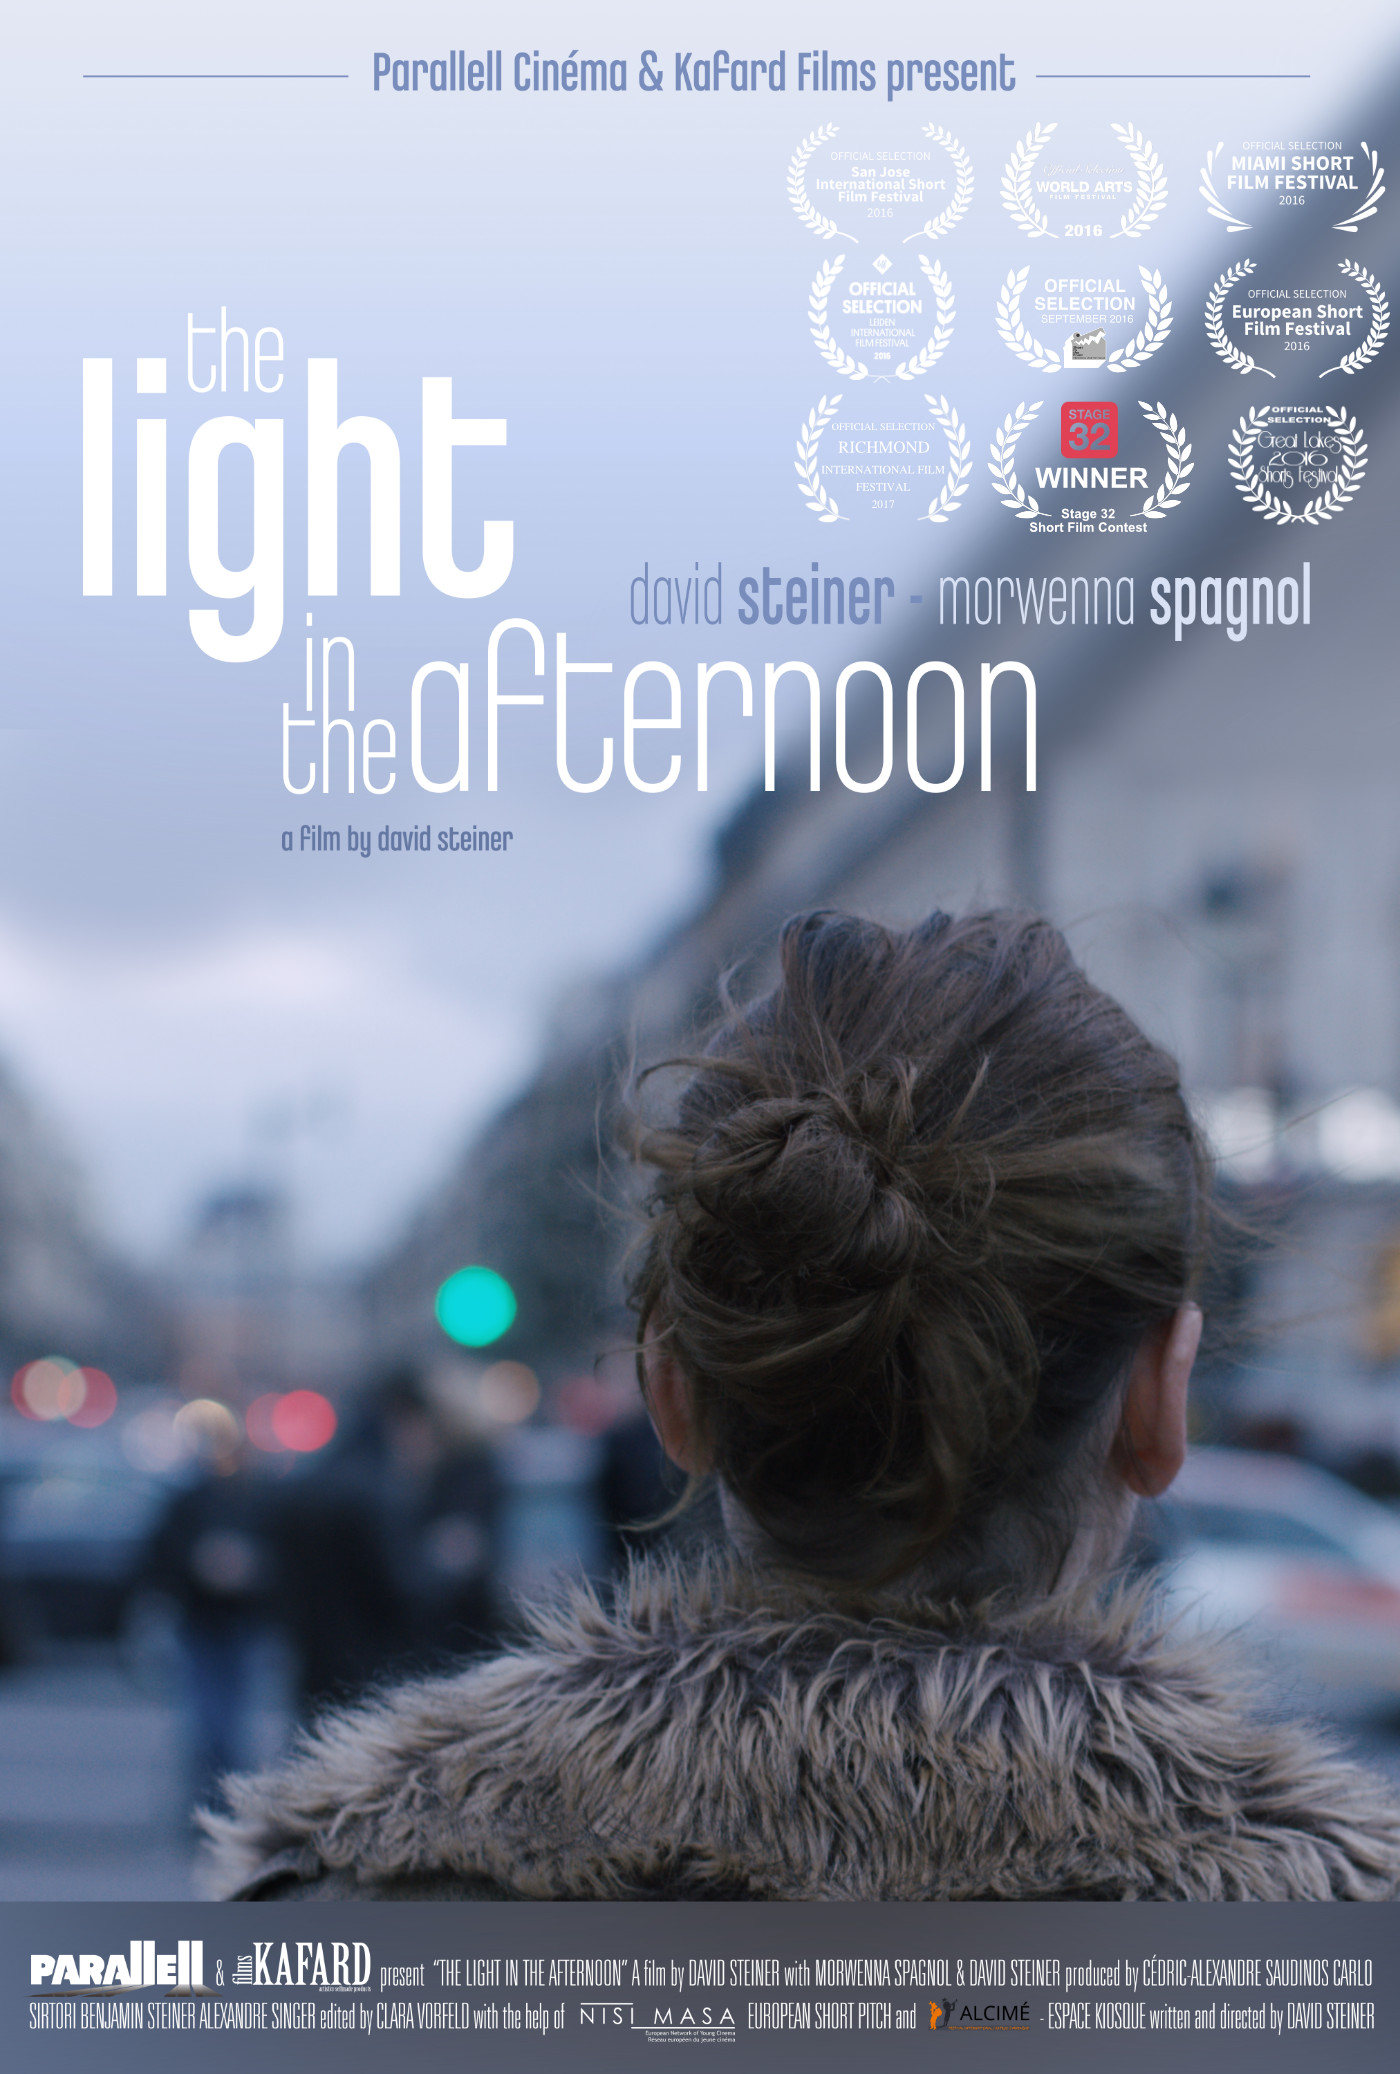 The-light-in-the-afternoon-Poster.jpg